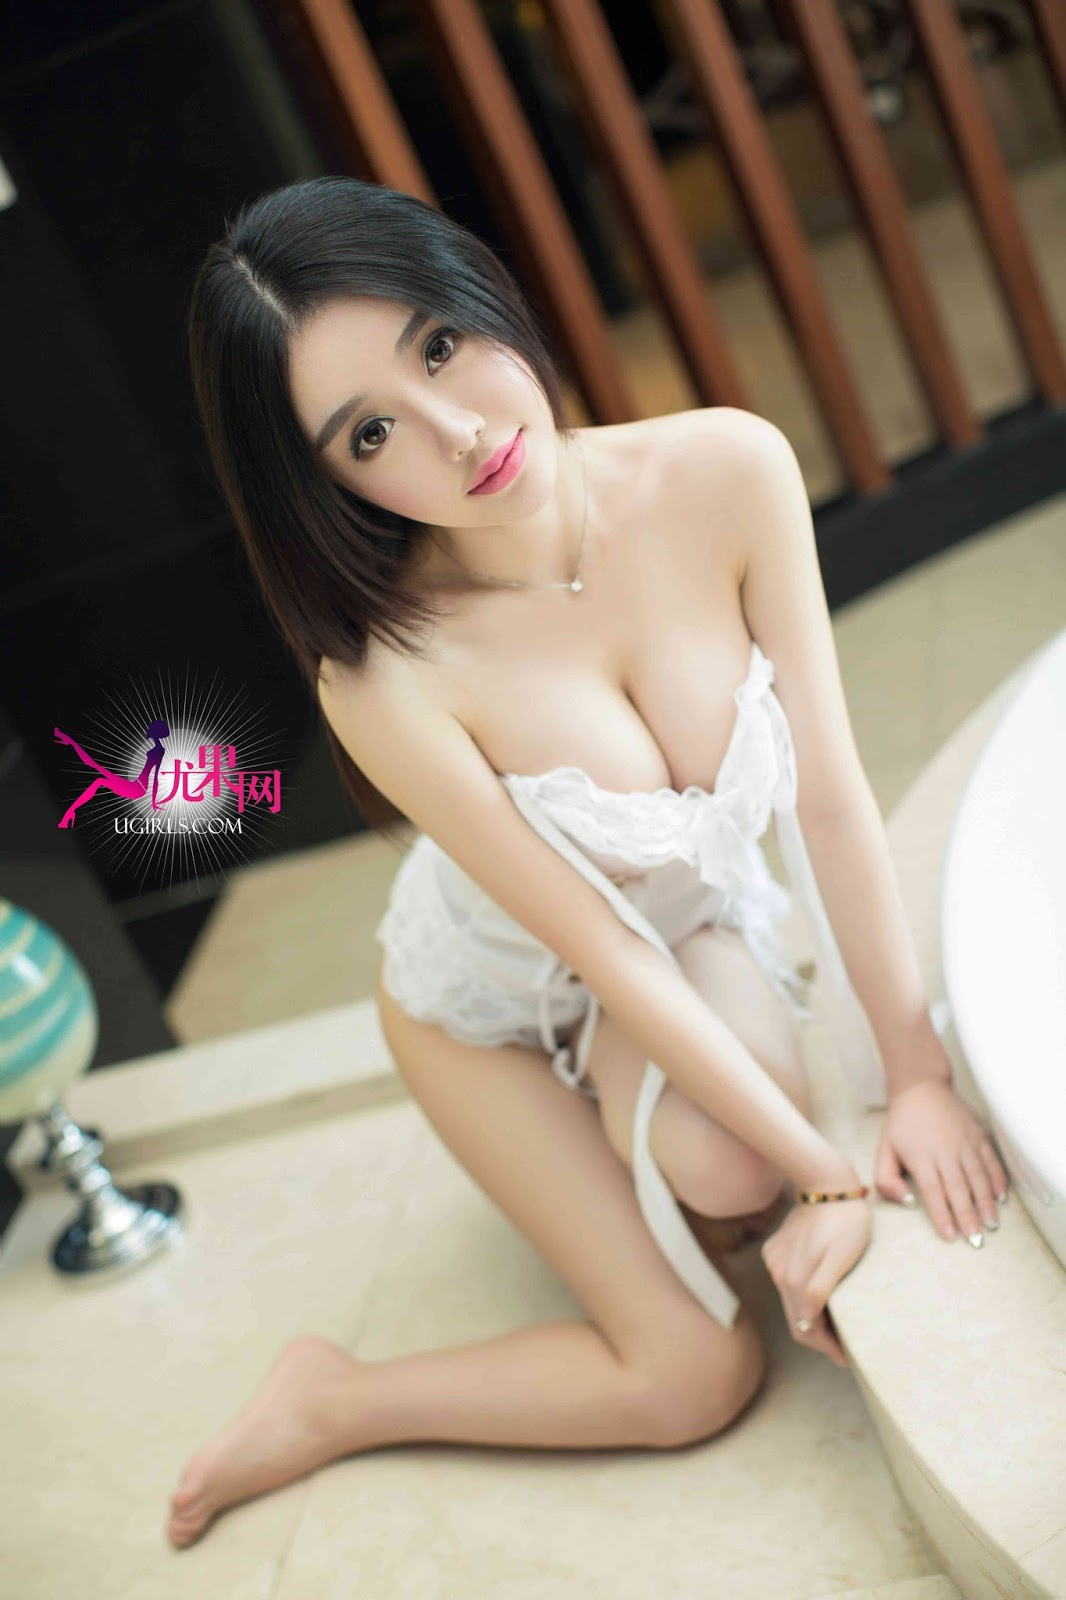 from Weston korean xxx sexy model